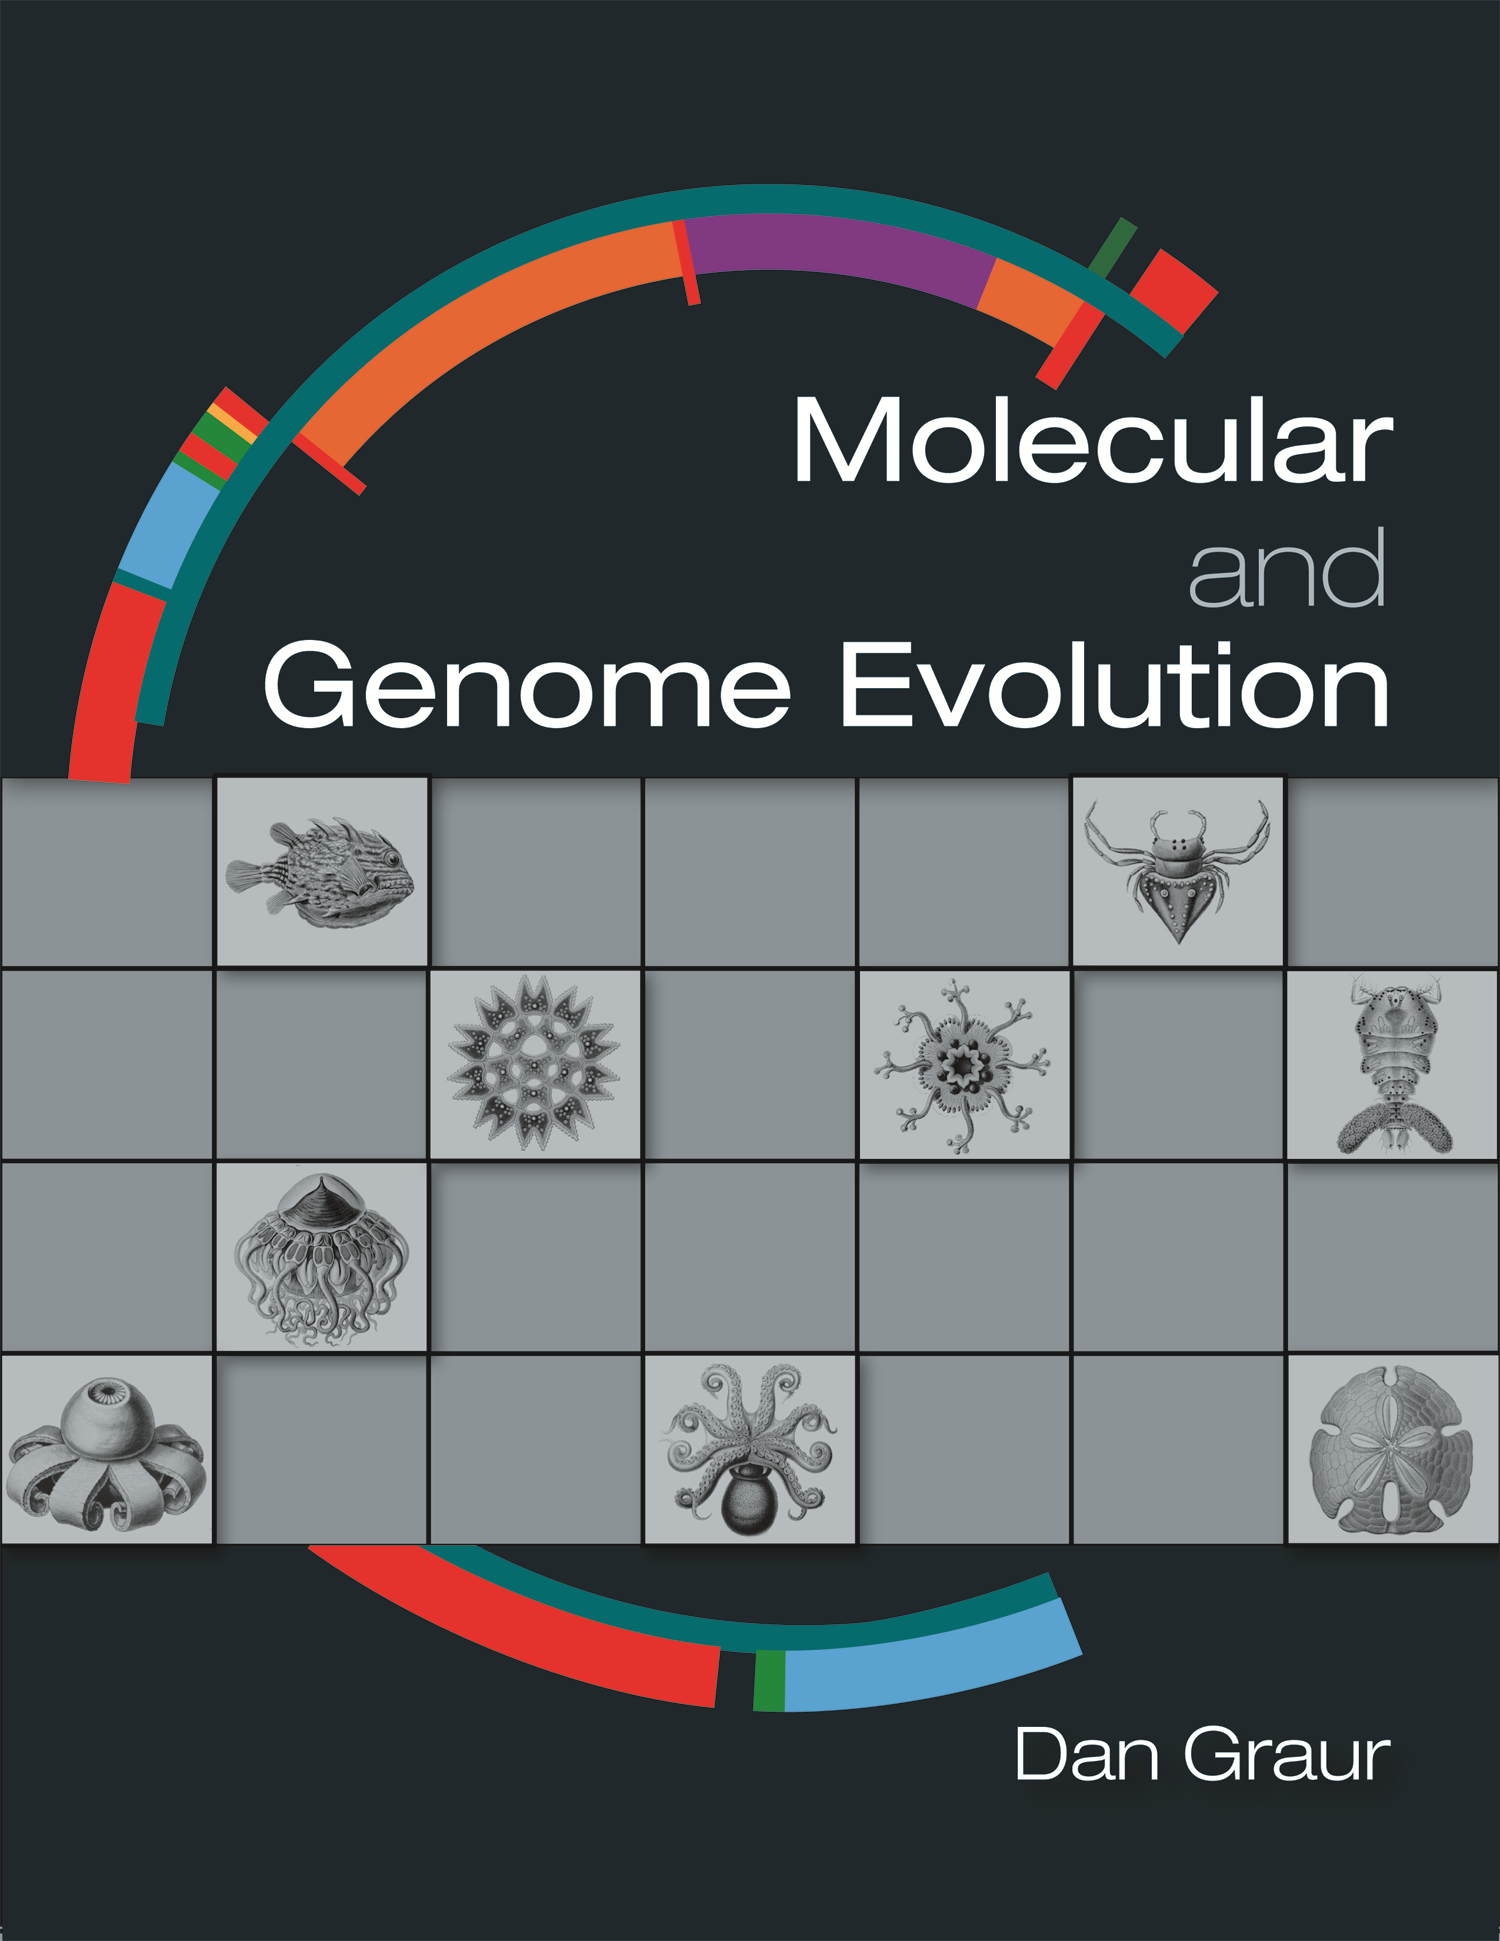 Molecular and Genome Evolution Instructor Resources